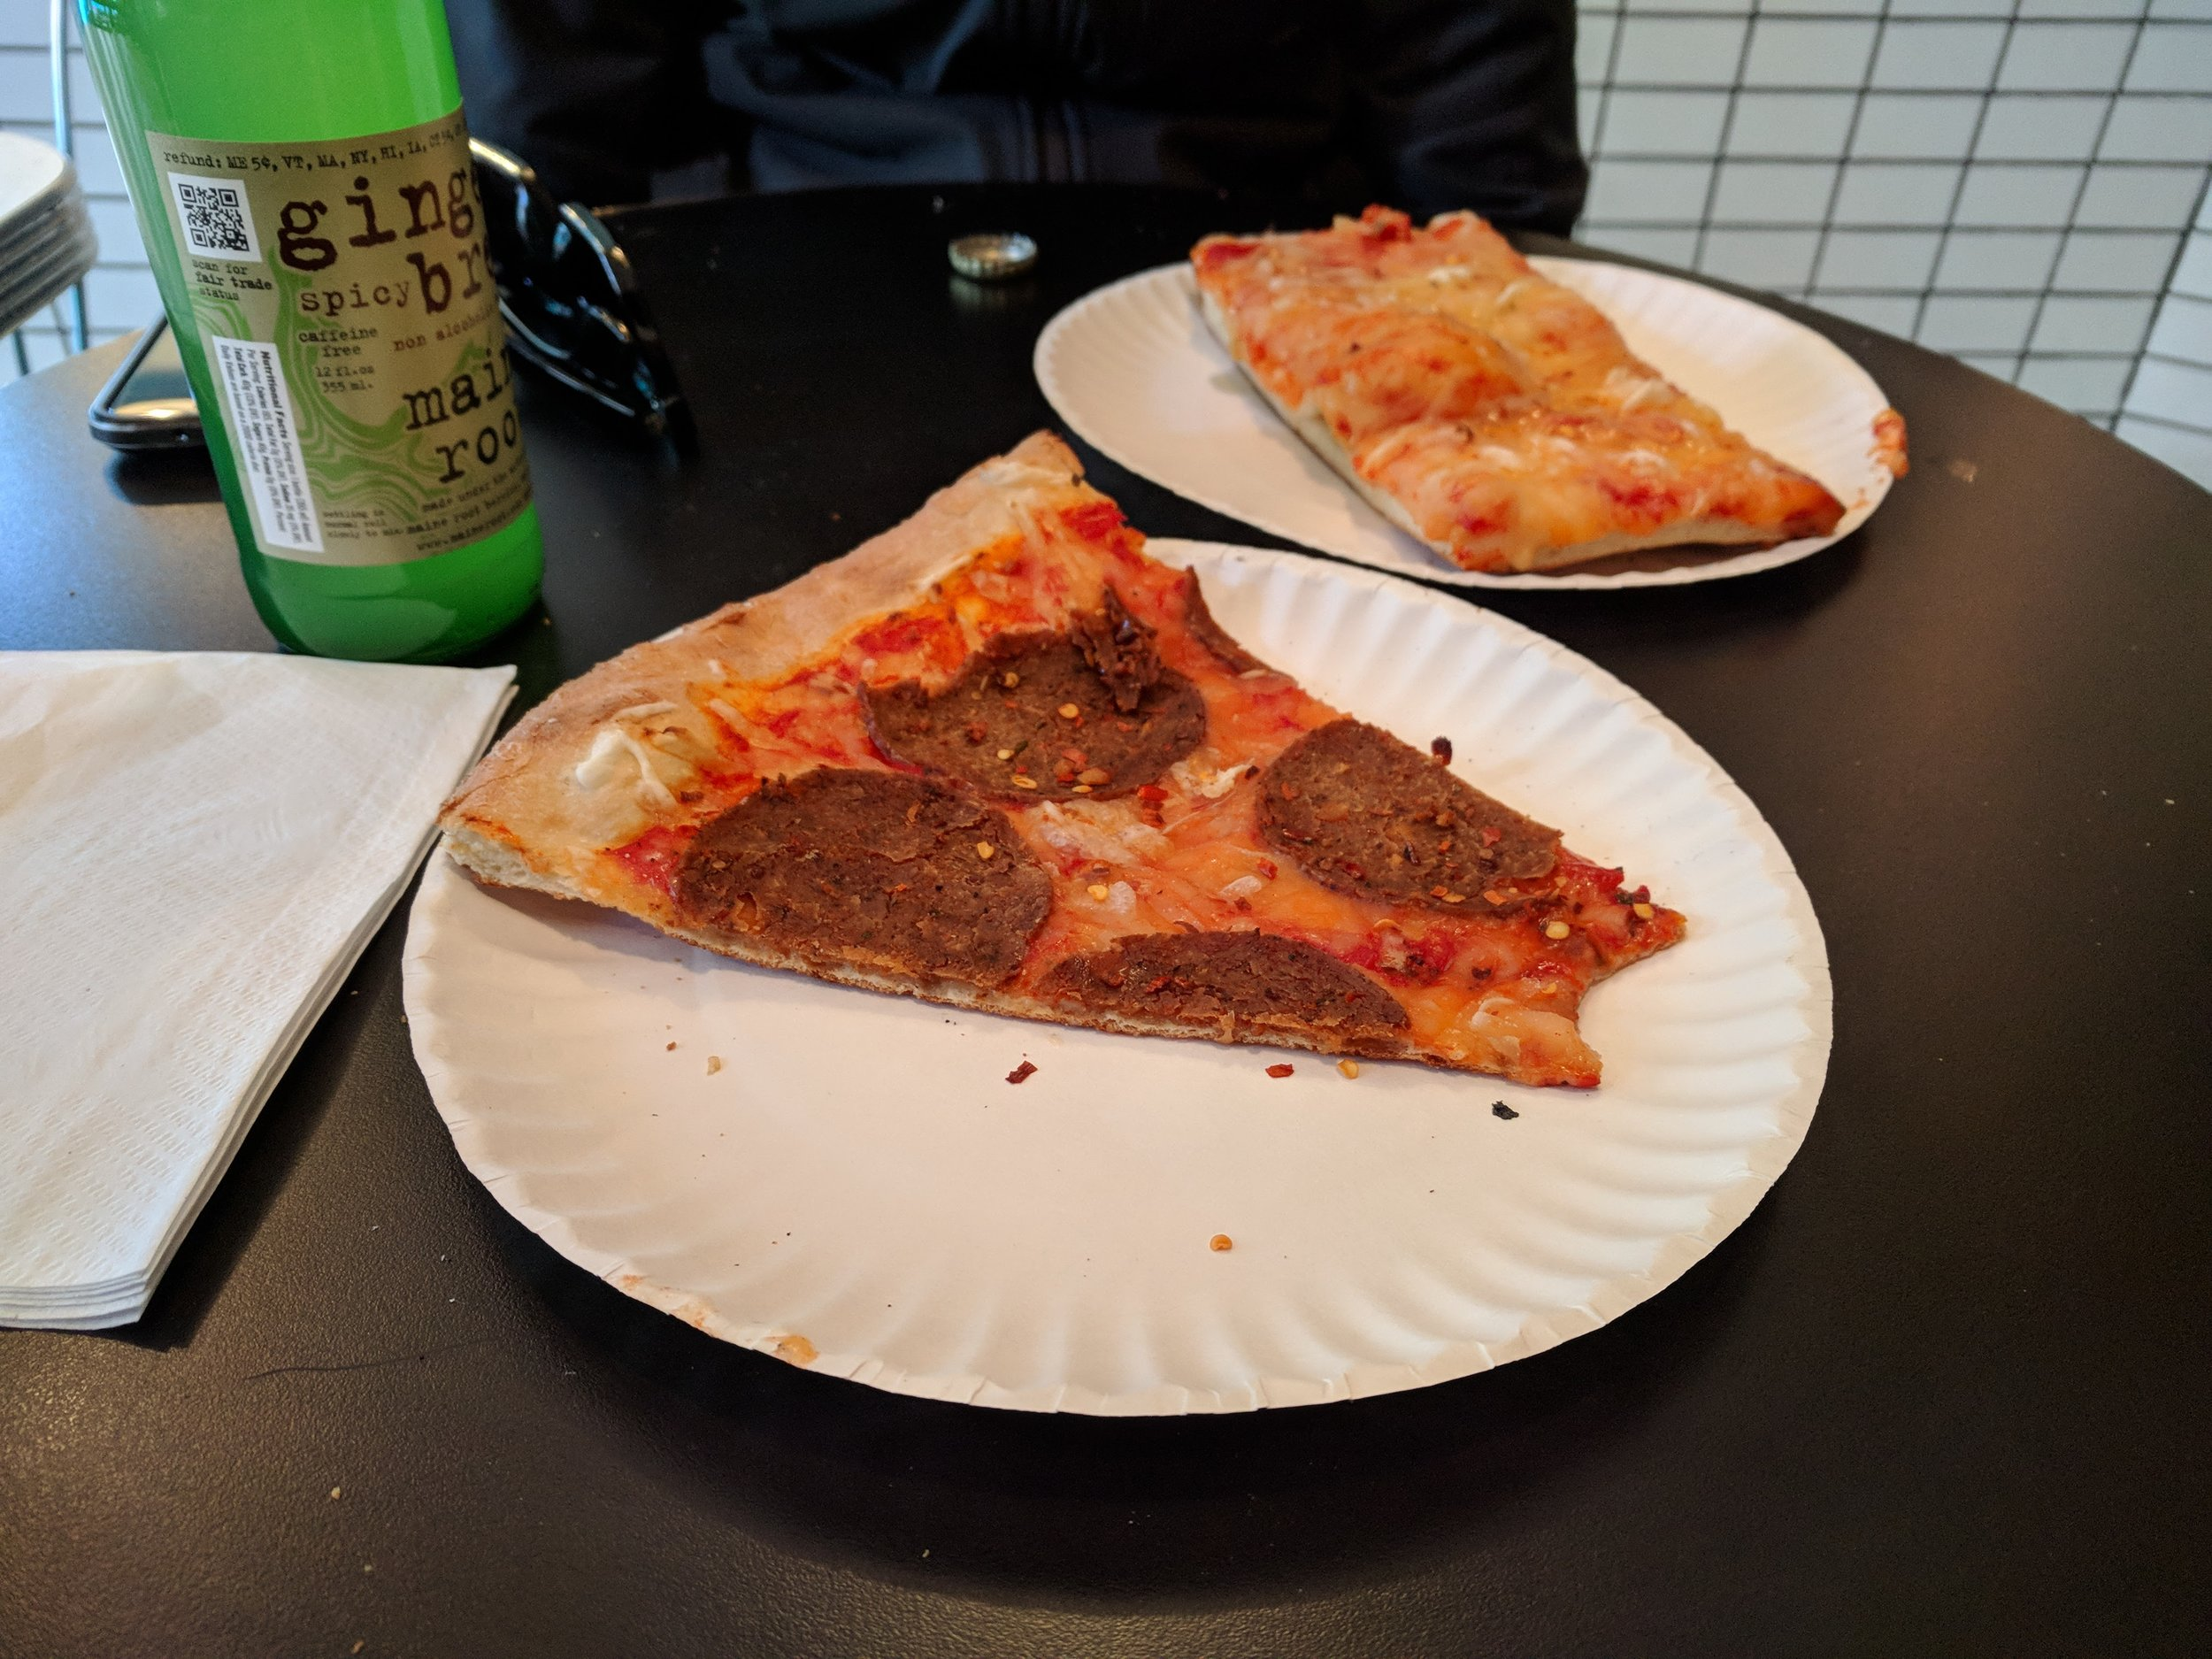 Pepperoni and Grandma slices at Screamer's in Greenpoint (which is a Philly-Brooklyn affair that I get why people are OBSESSED with). I'll admit that I dig it but the mrs was not feeling it !